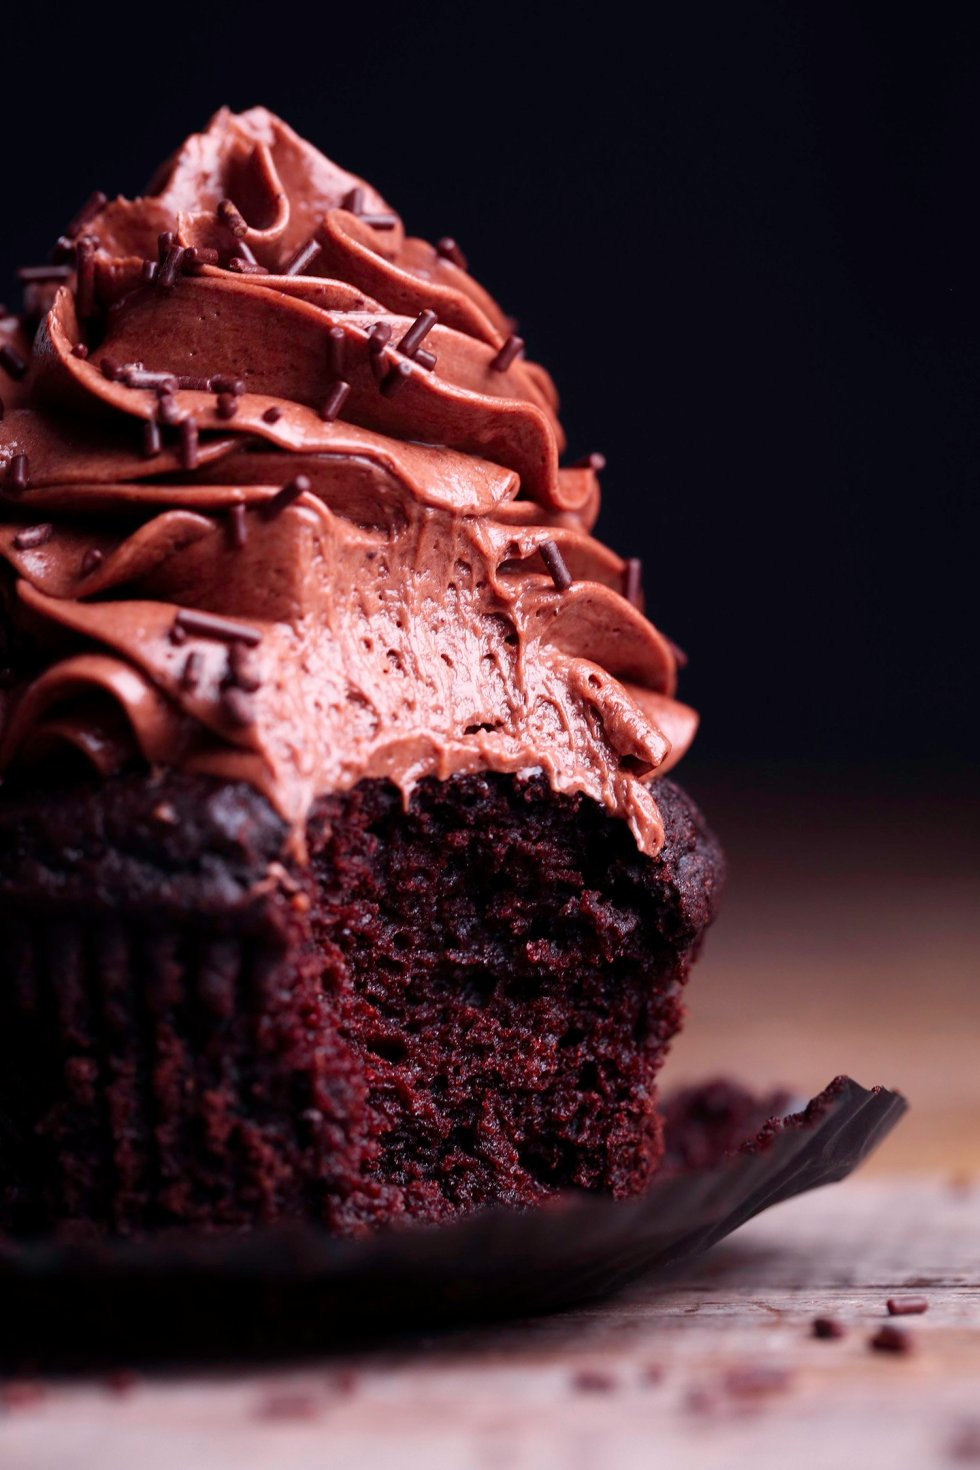 Vegan Chocolate Cupcake | Gluten-Free Option Included